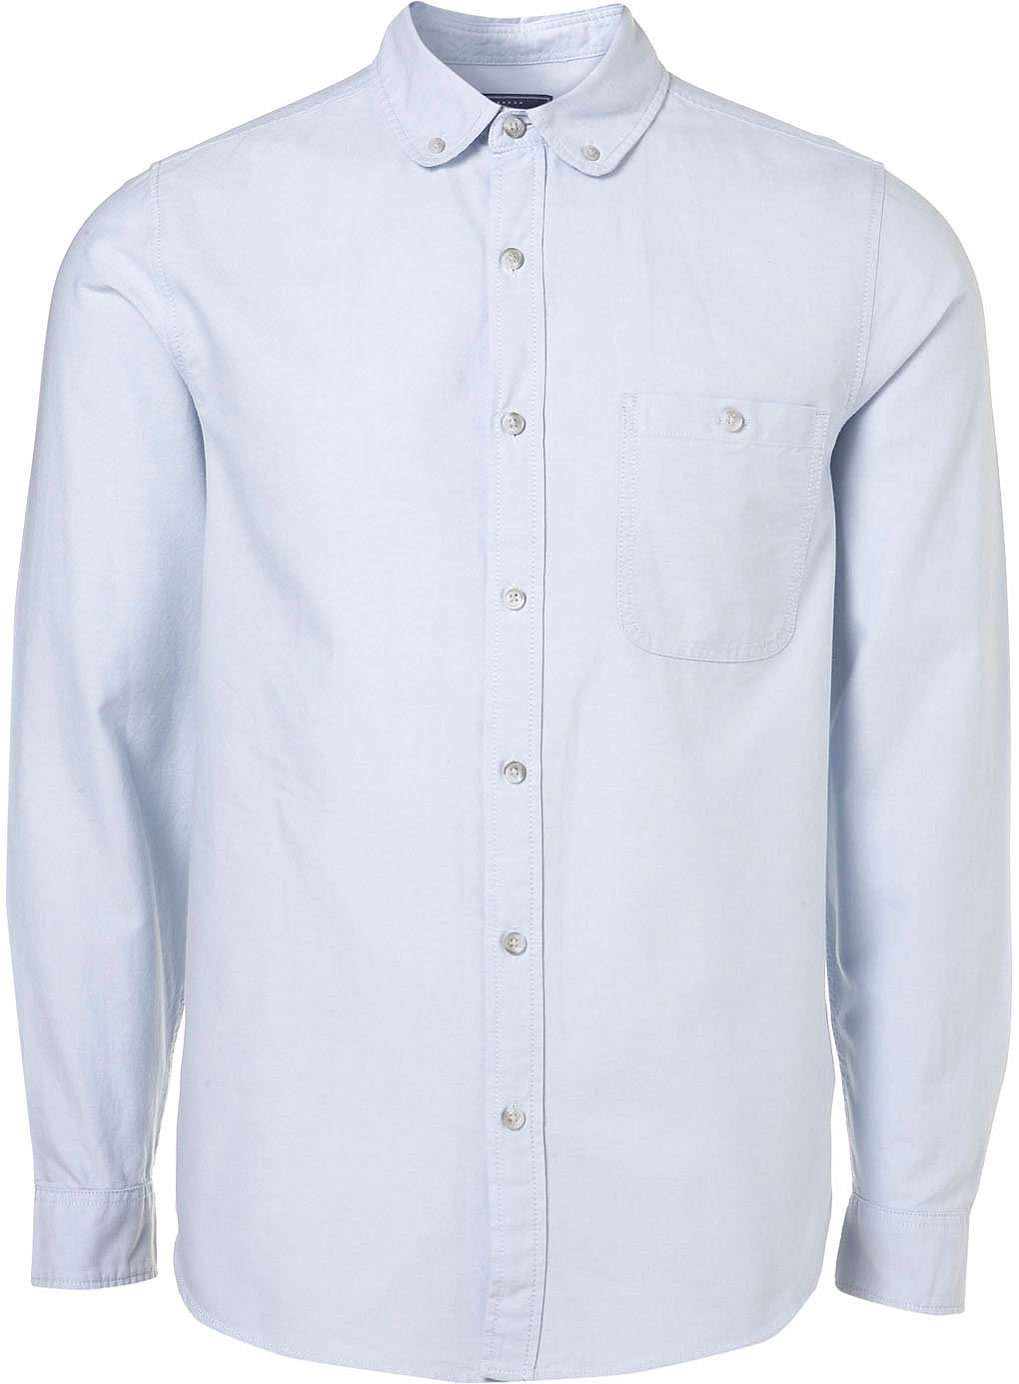 ou acheter button down oxford